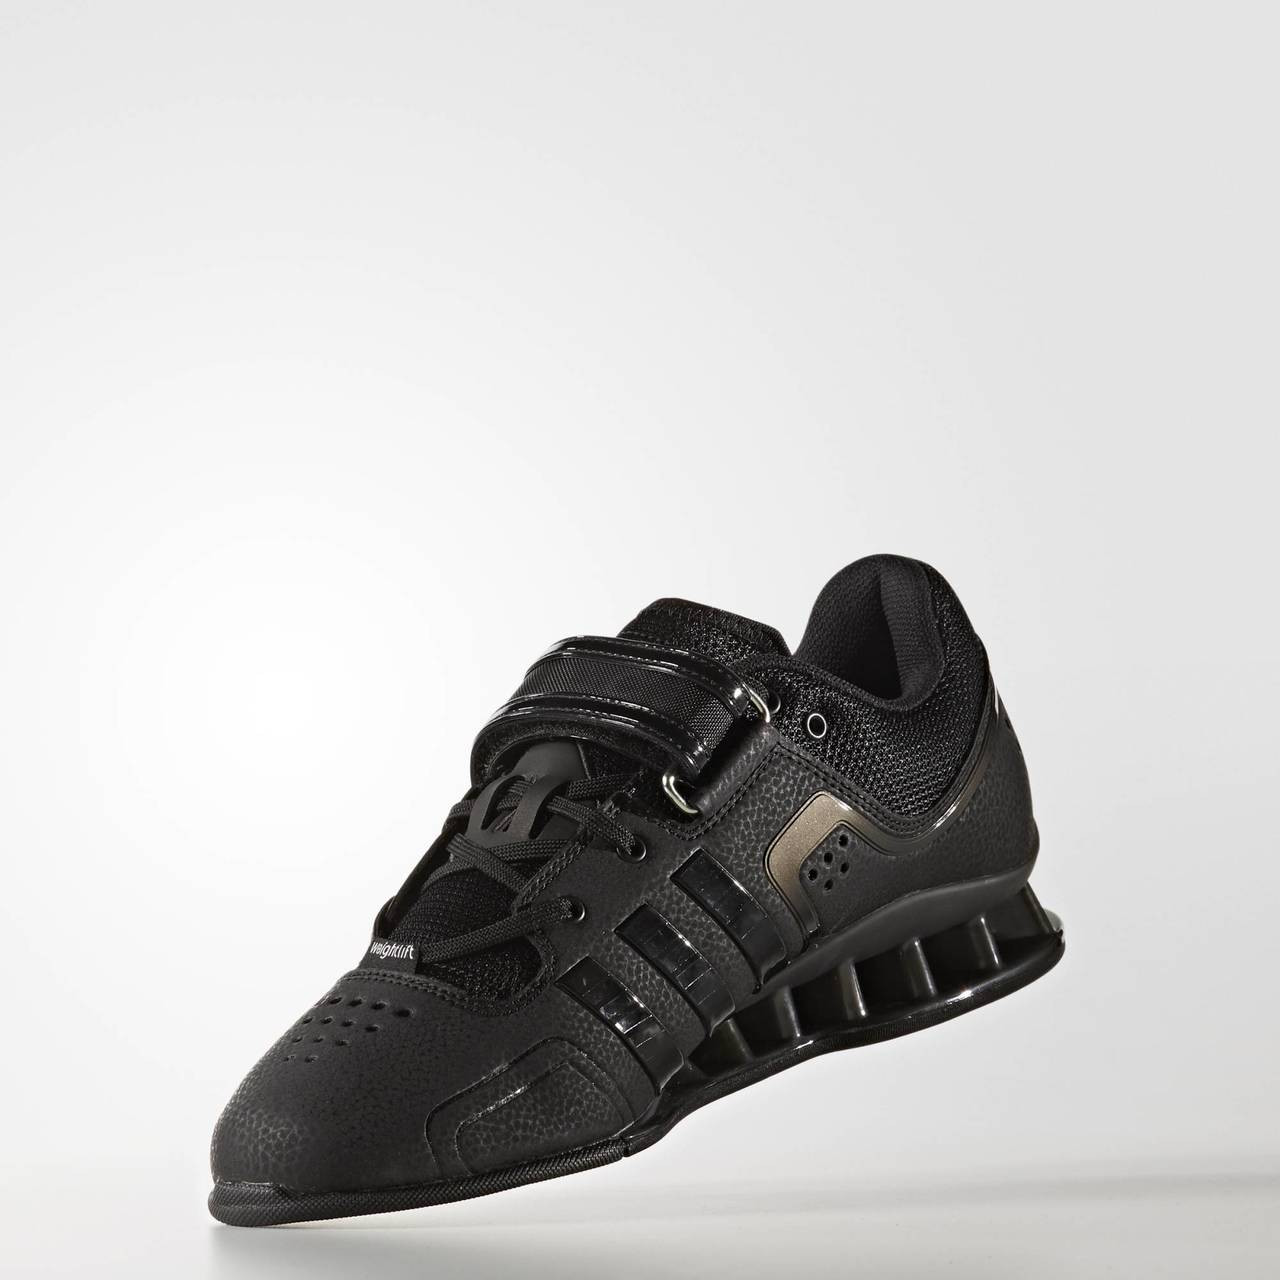 Adidas AdiPower Weightlifitng Shoes Black